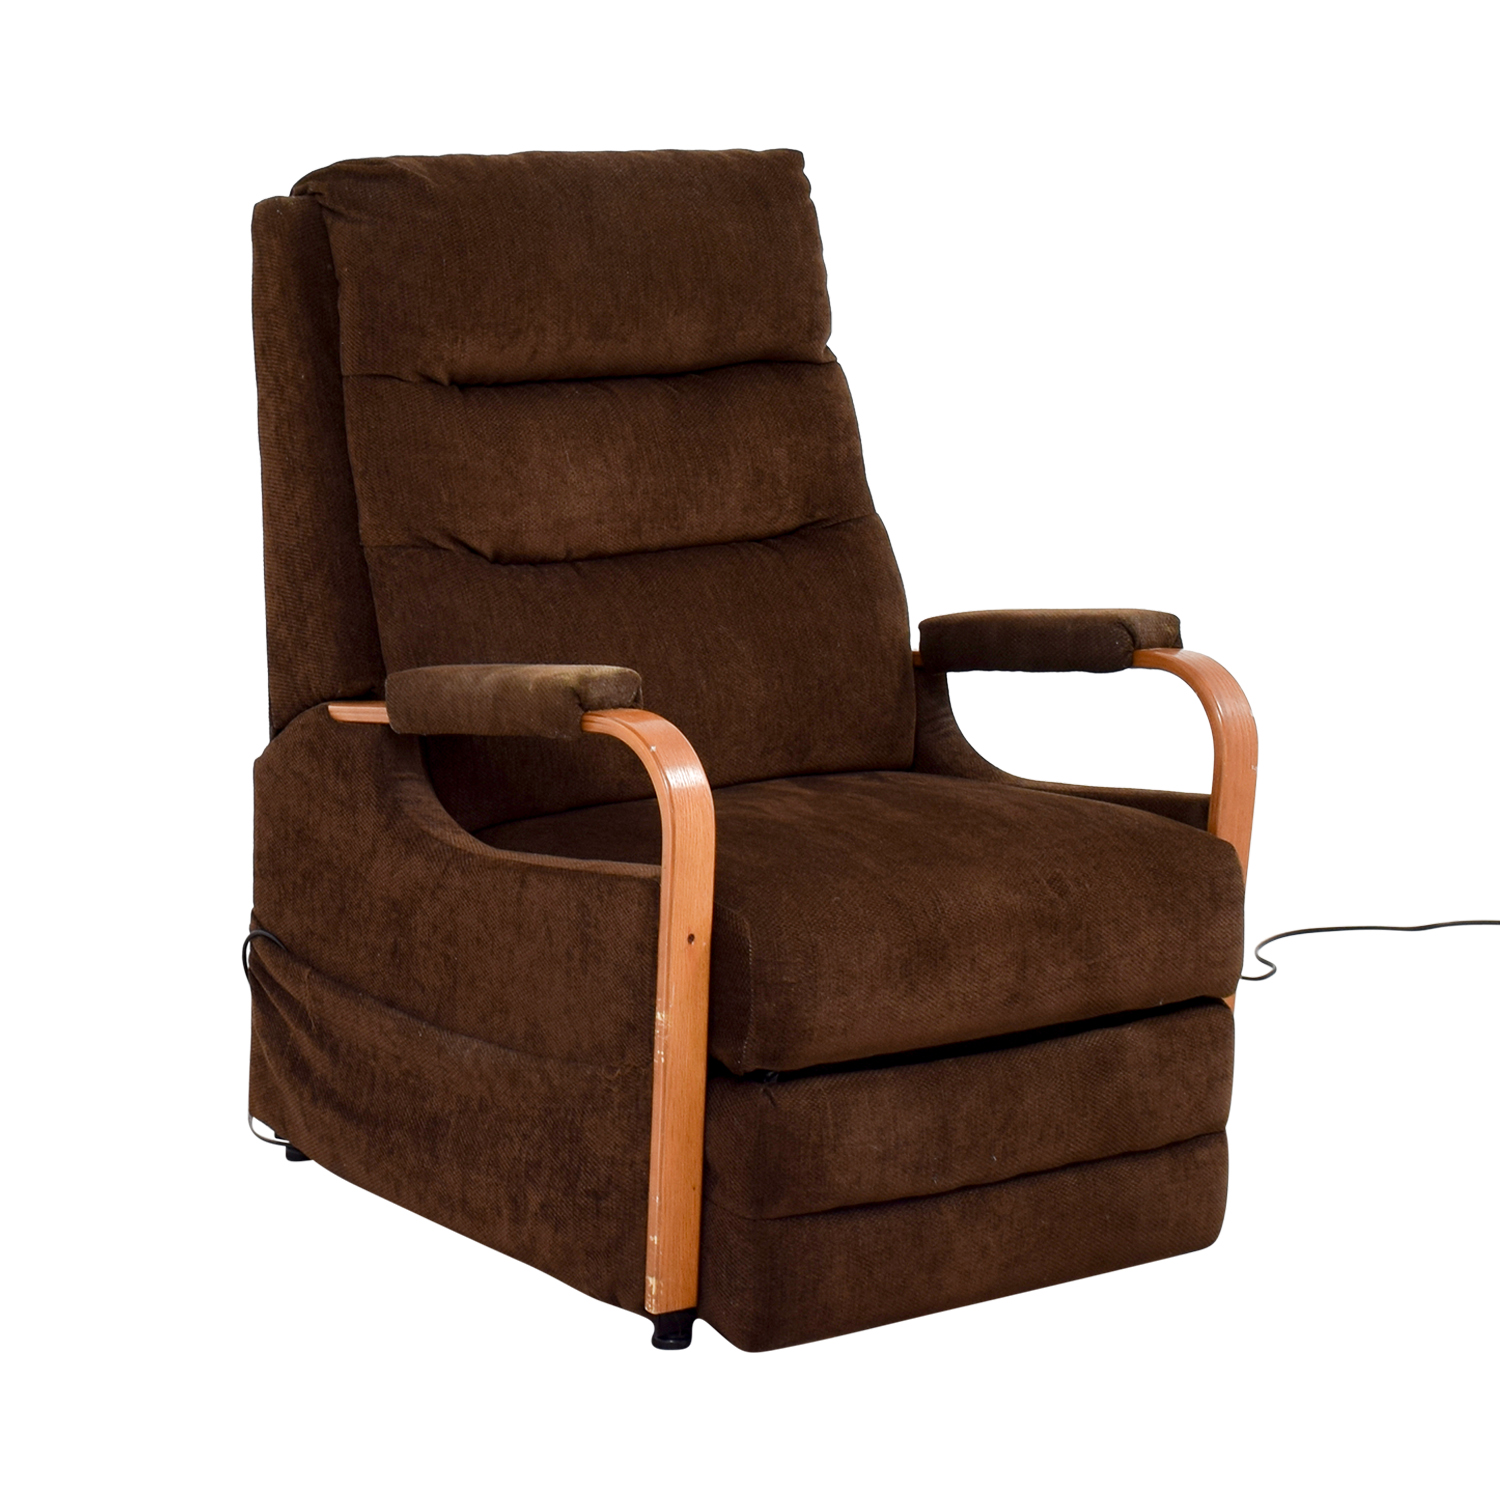 buy Bobs Furniture Brown Remote Control Recliner Bobs Furniture Recliners